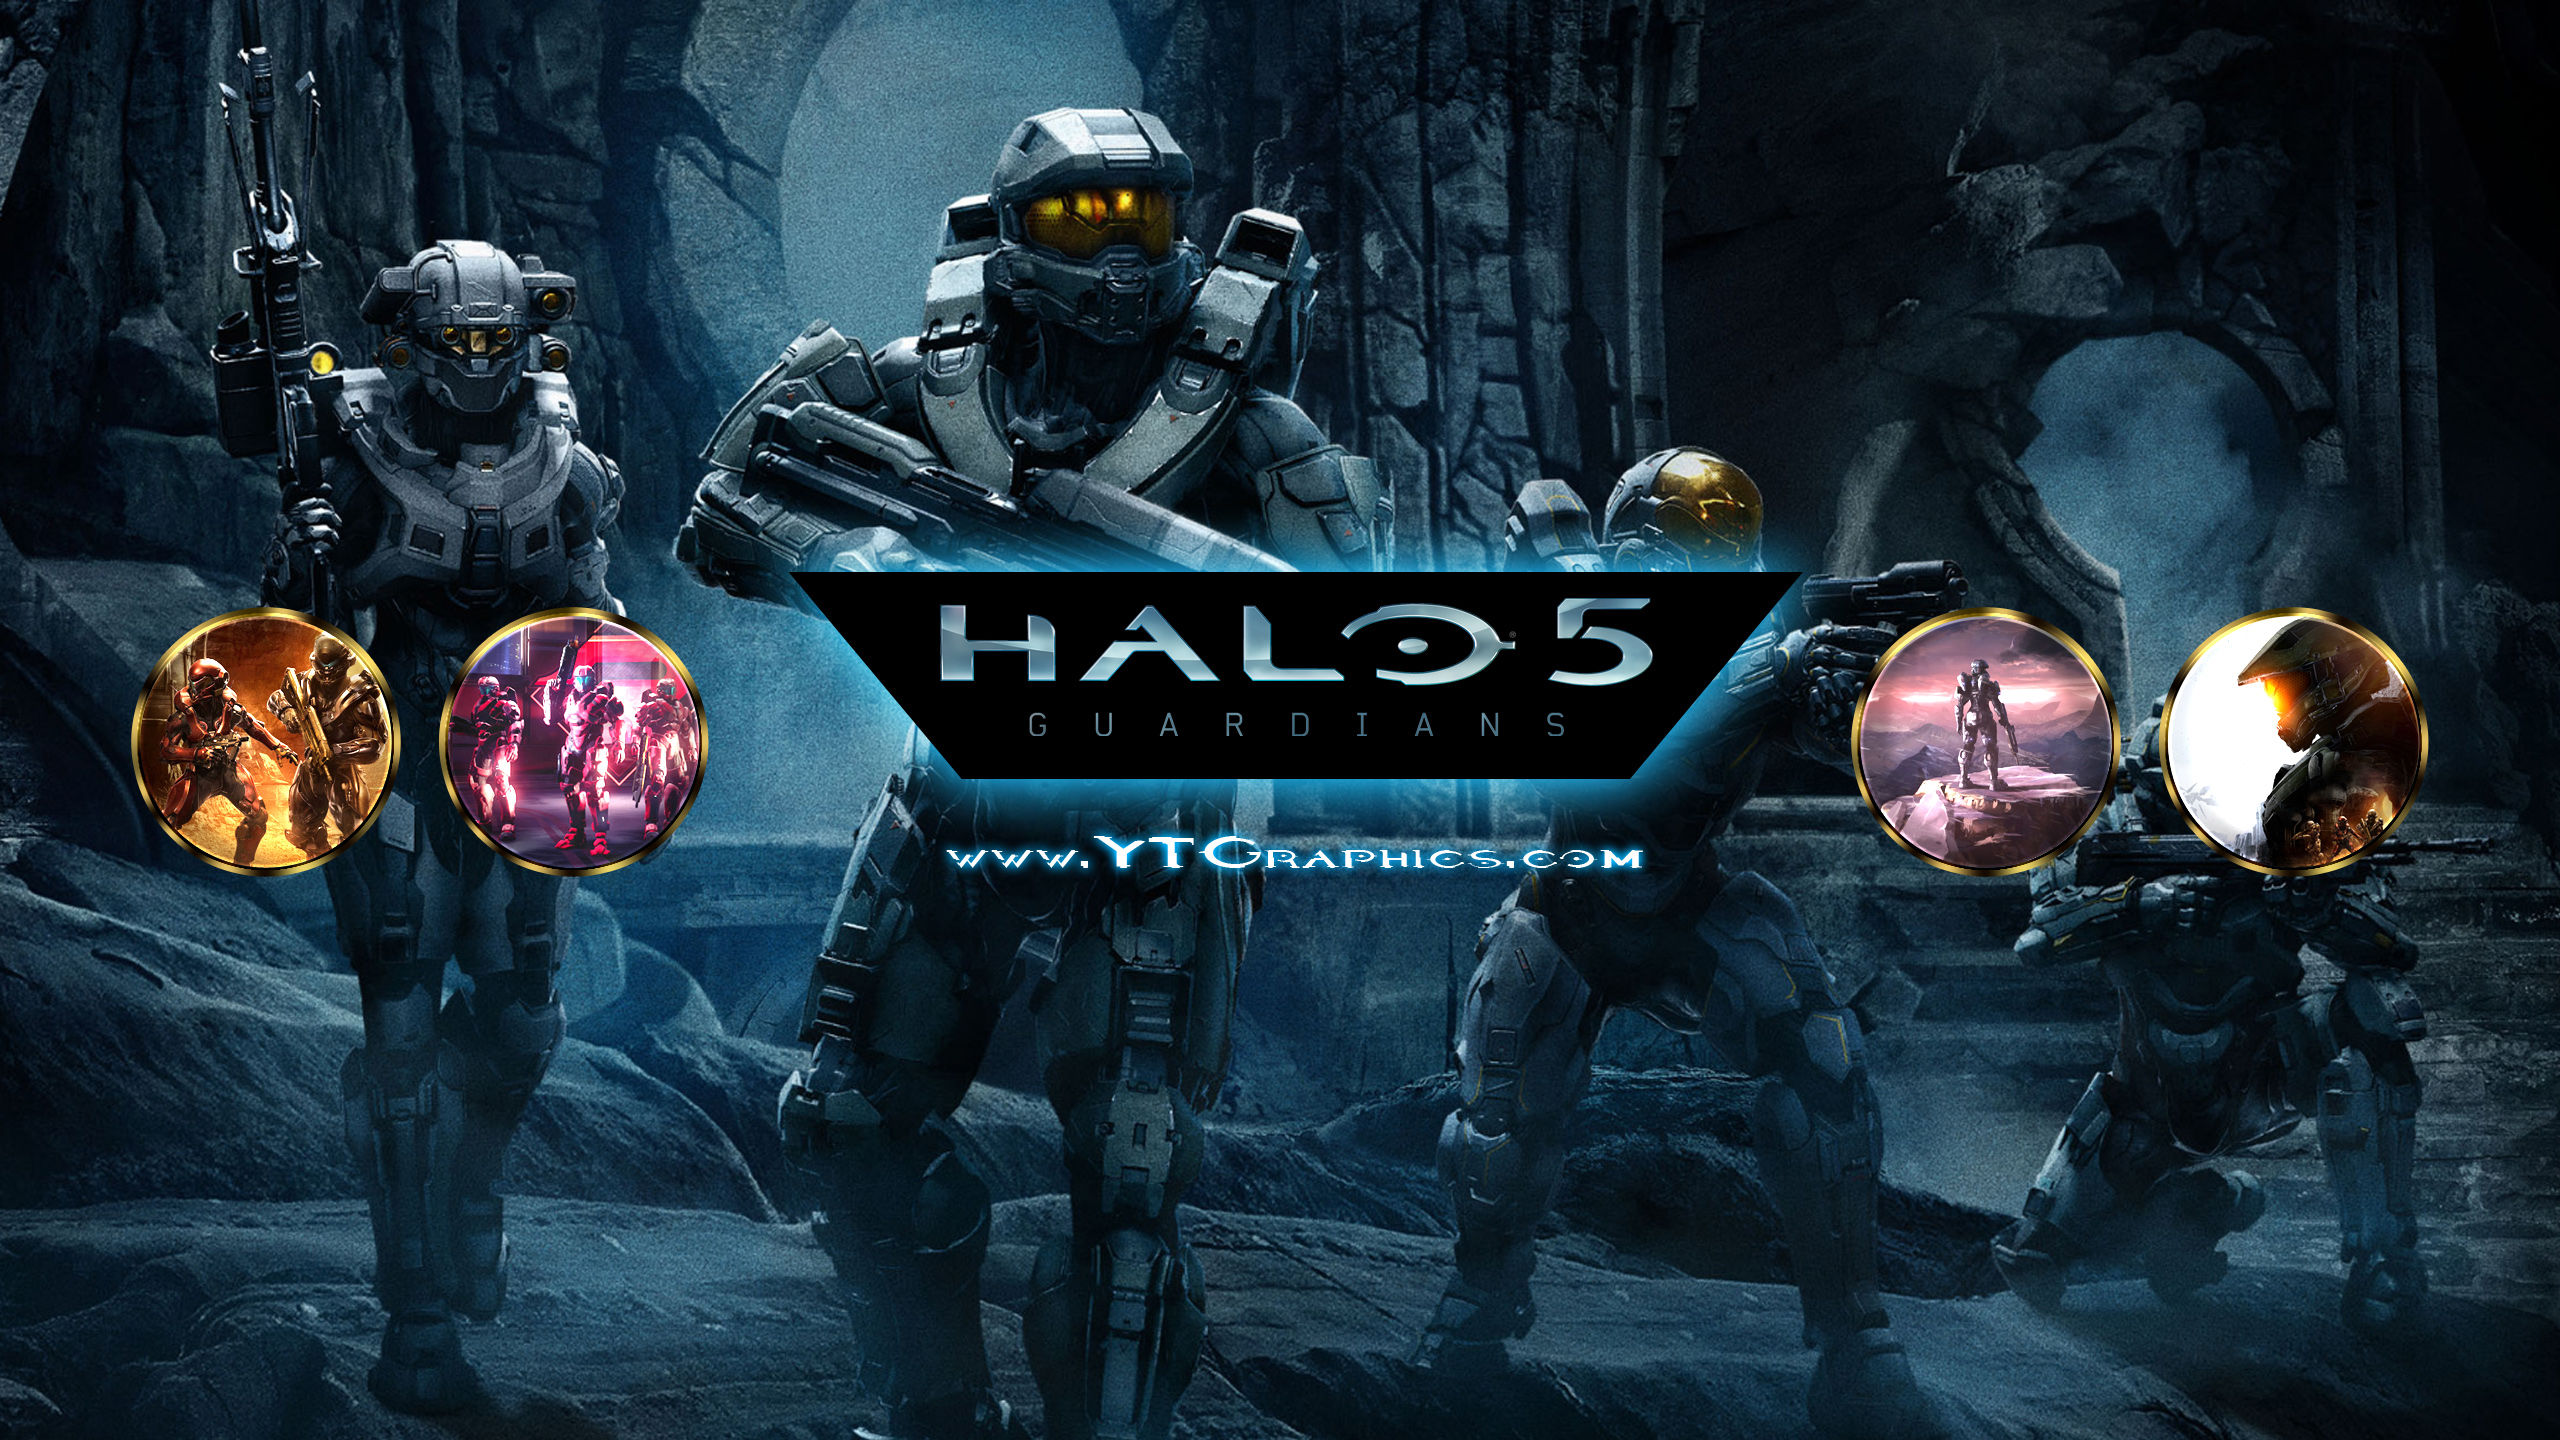 Halo 5 Youtube Channel Art Banners